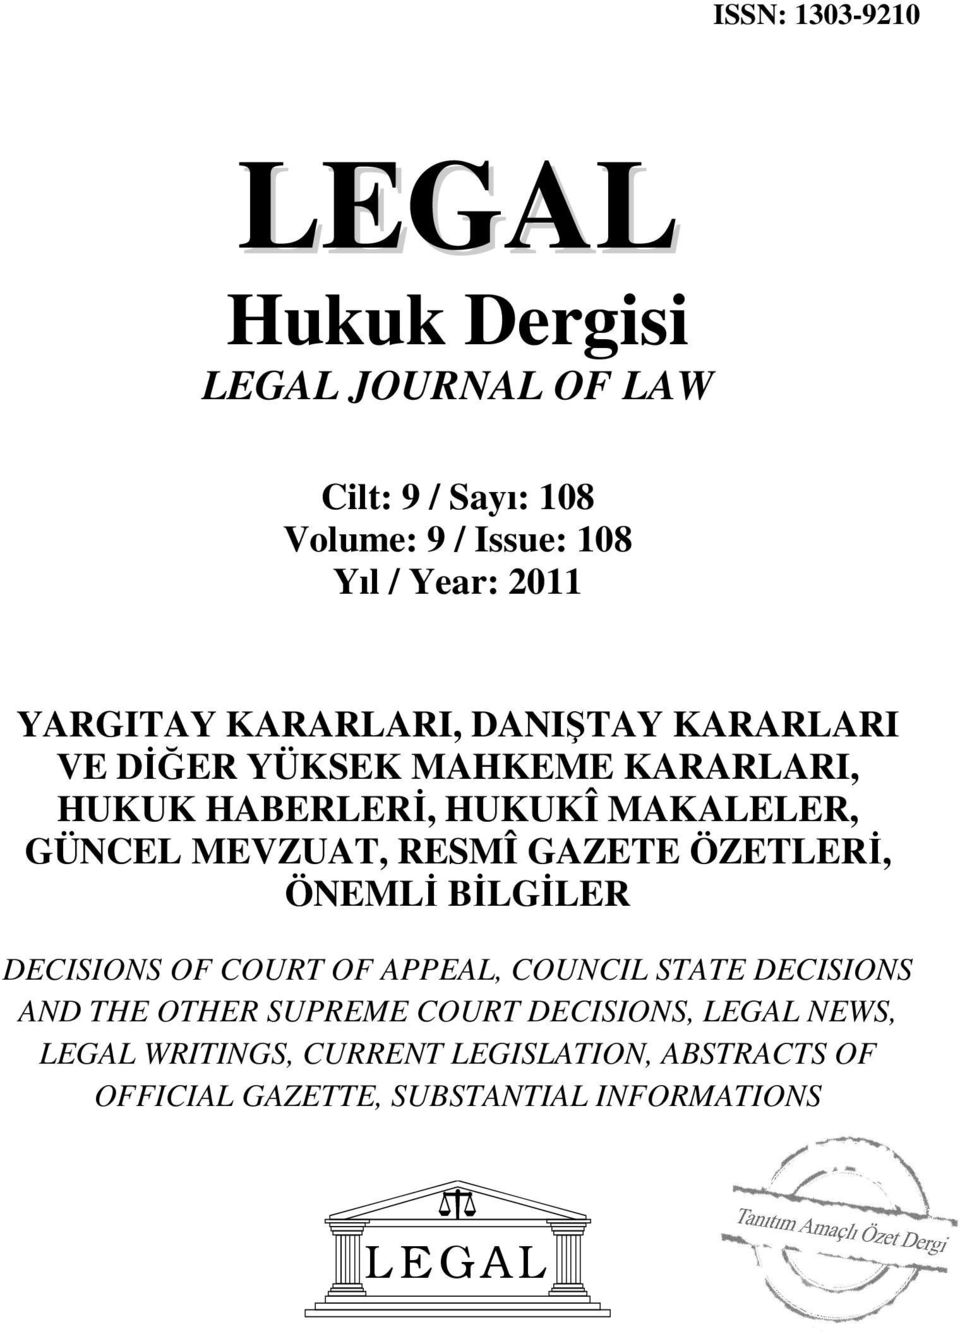 RESMÎ GAZETE ÖZETLERİ, ÖNEMLİ BİLGİLER DECISIONS OF COURT OF APPEAL, COUNCIL STATE DECISIONS AND THE OTHER SUPREME